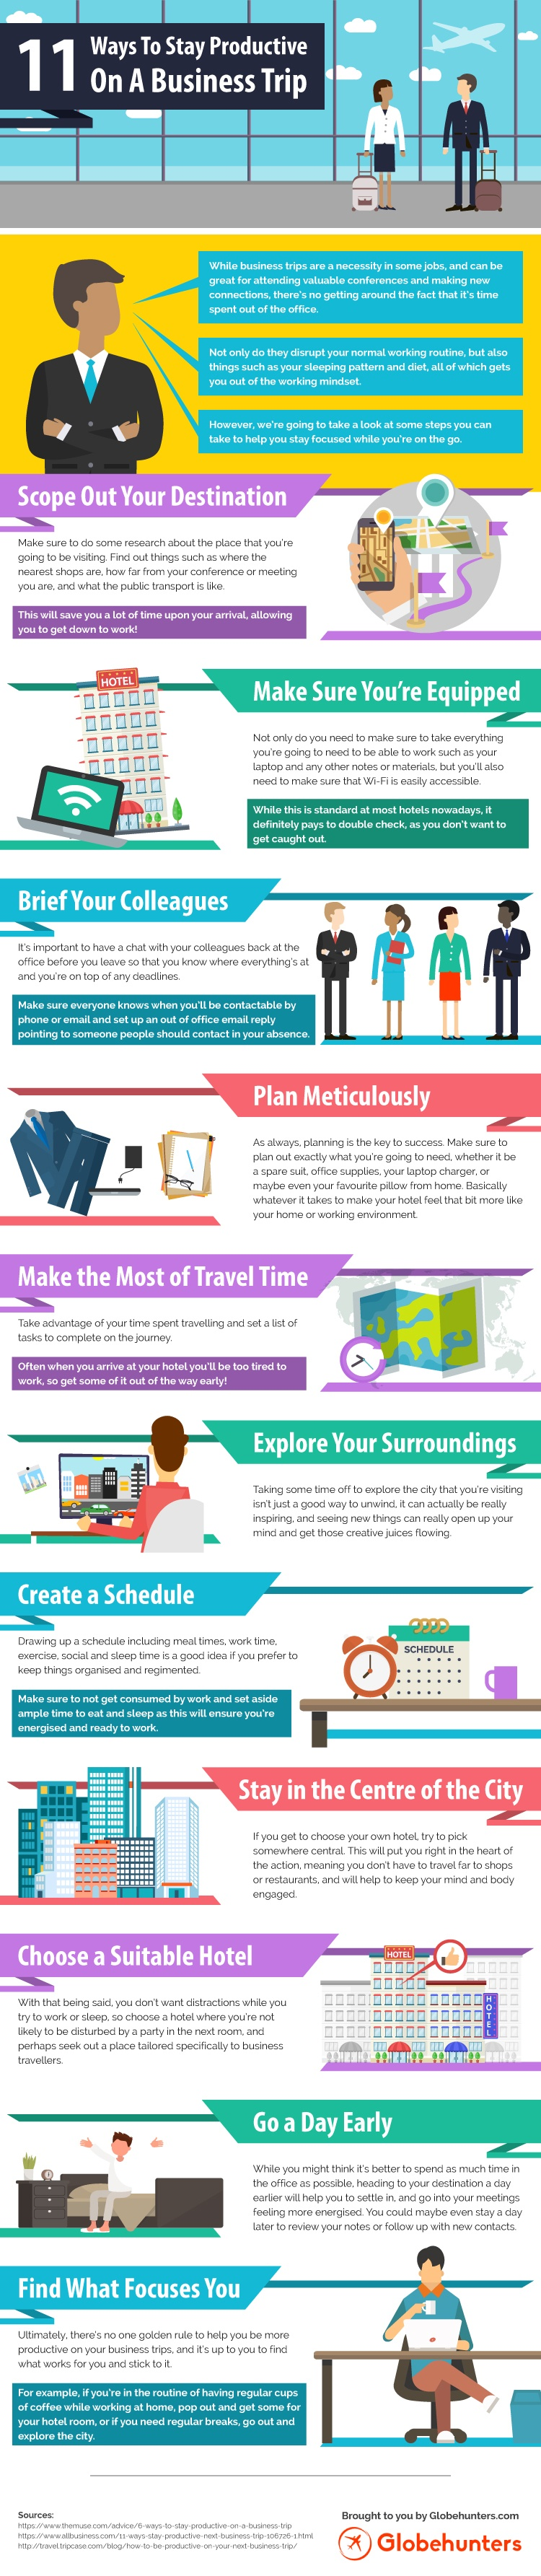 11 ways to stay productive on a business trip